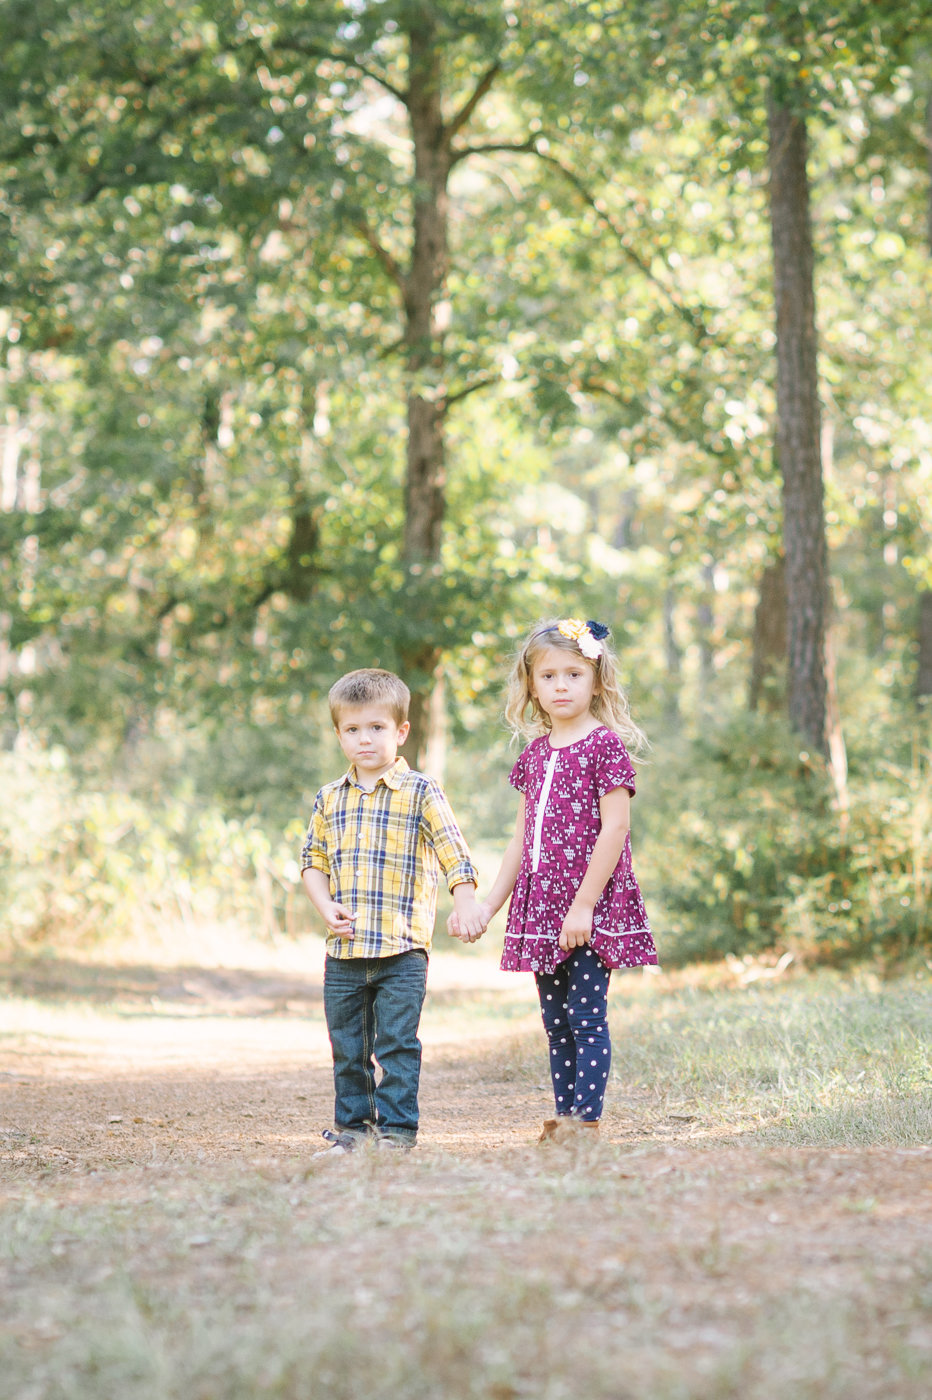 thewoodlands-family-portrait-photographer-2